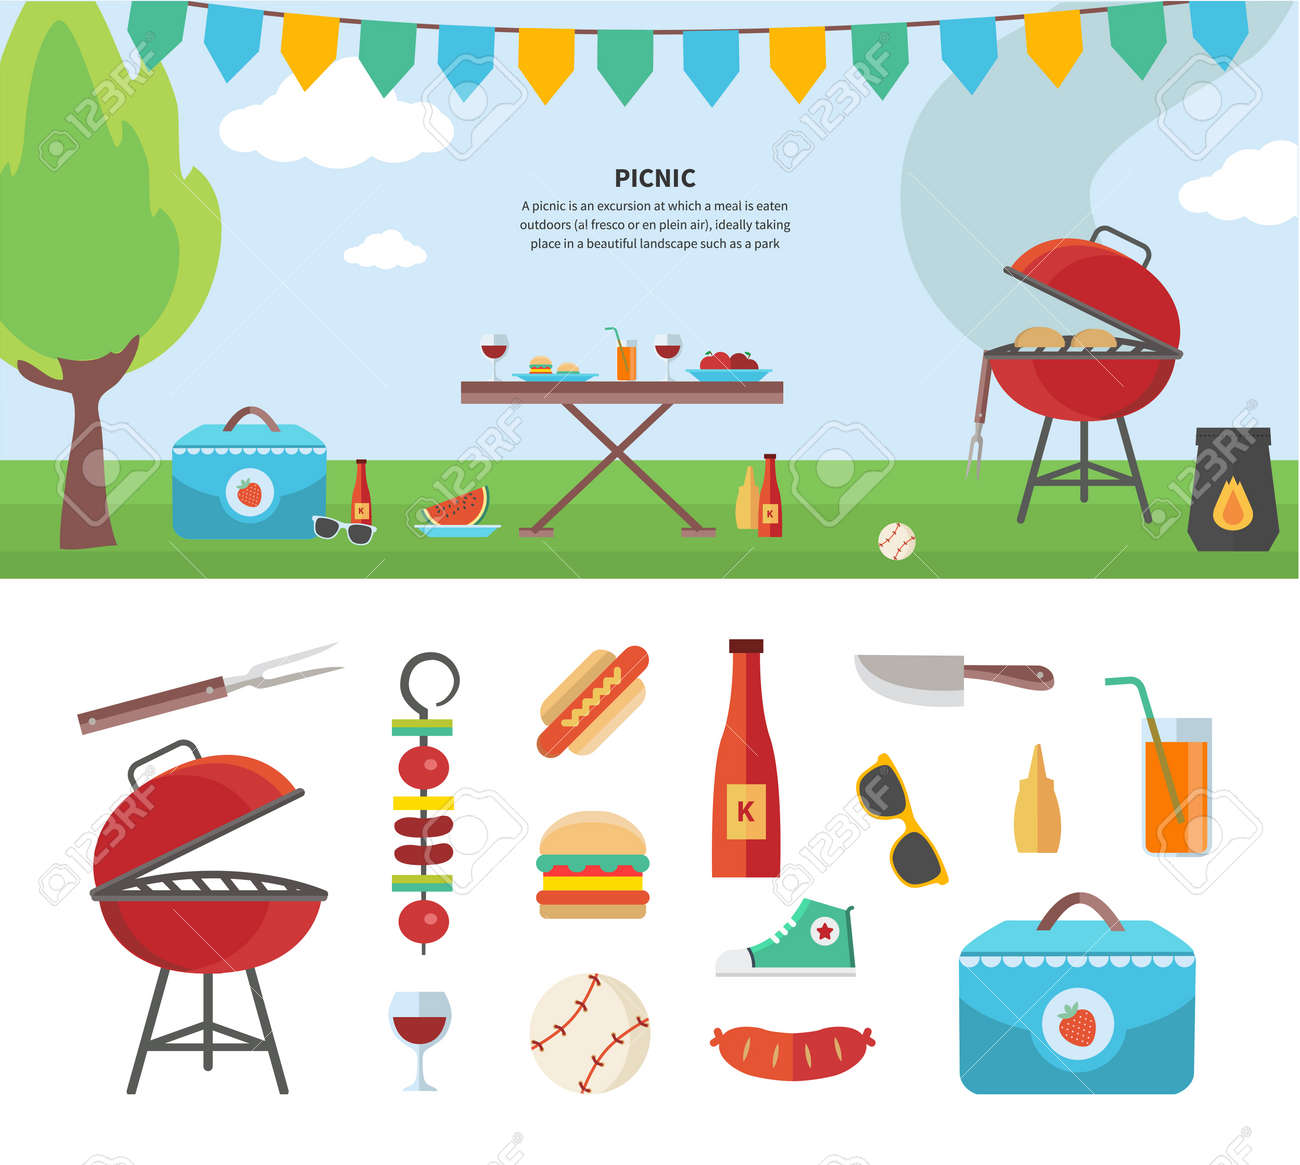 summertime holiday template picnic outdoor summer accessories summertime holiday template picnic outdoor summer accessories illustration and icon set flat design of